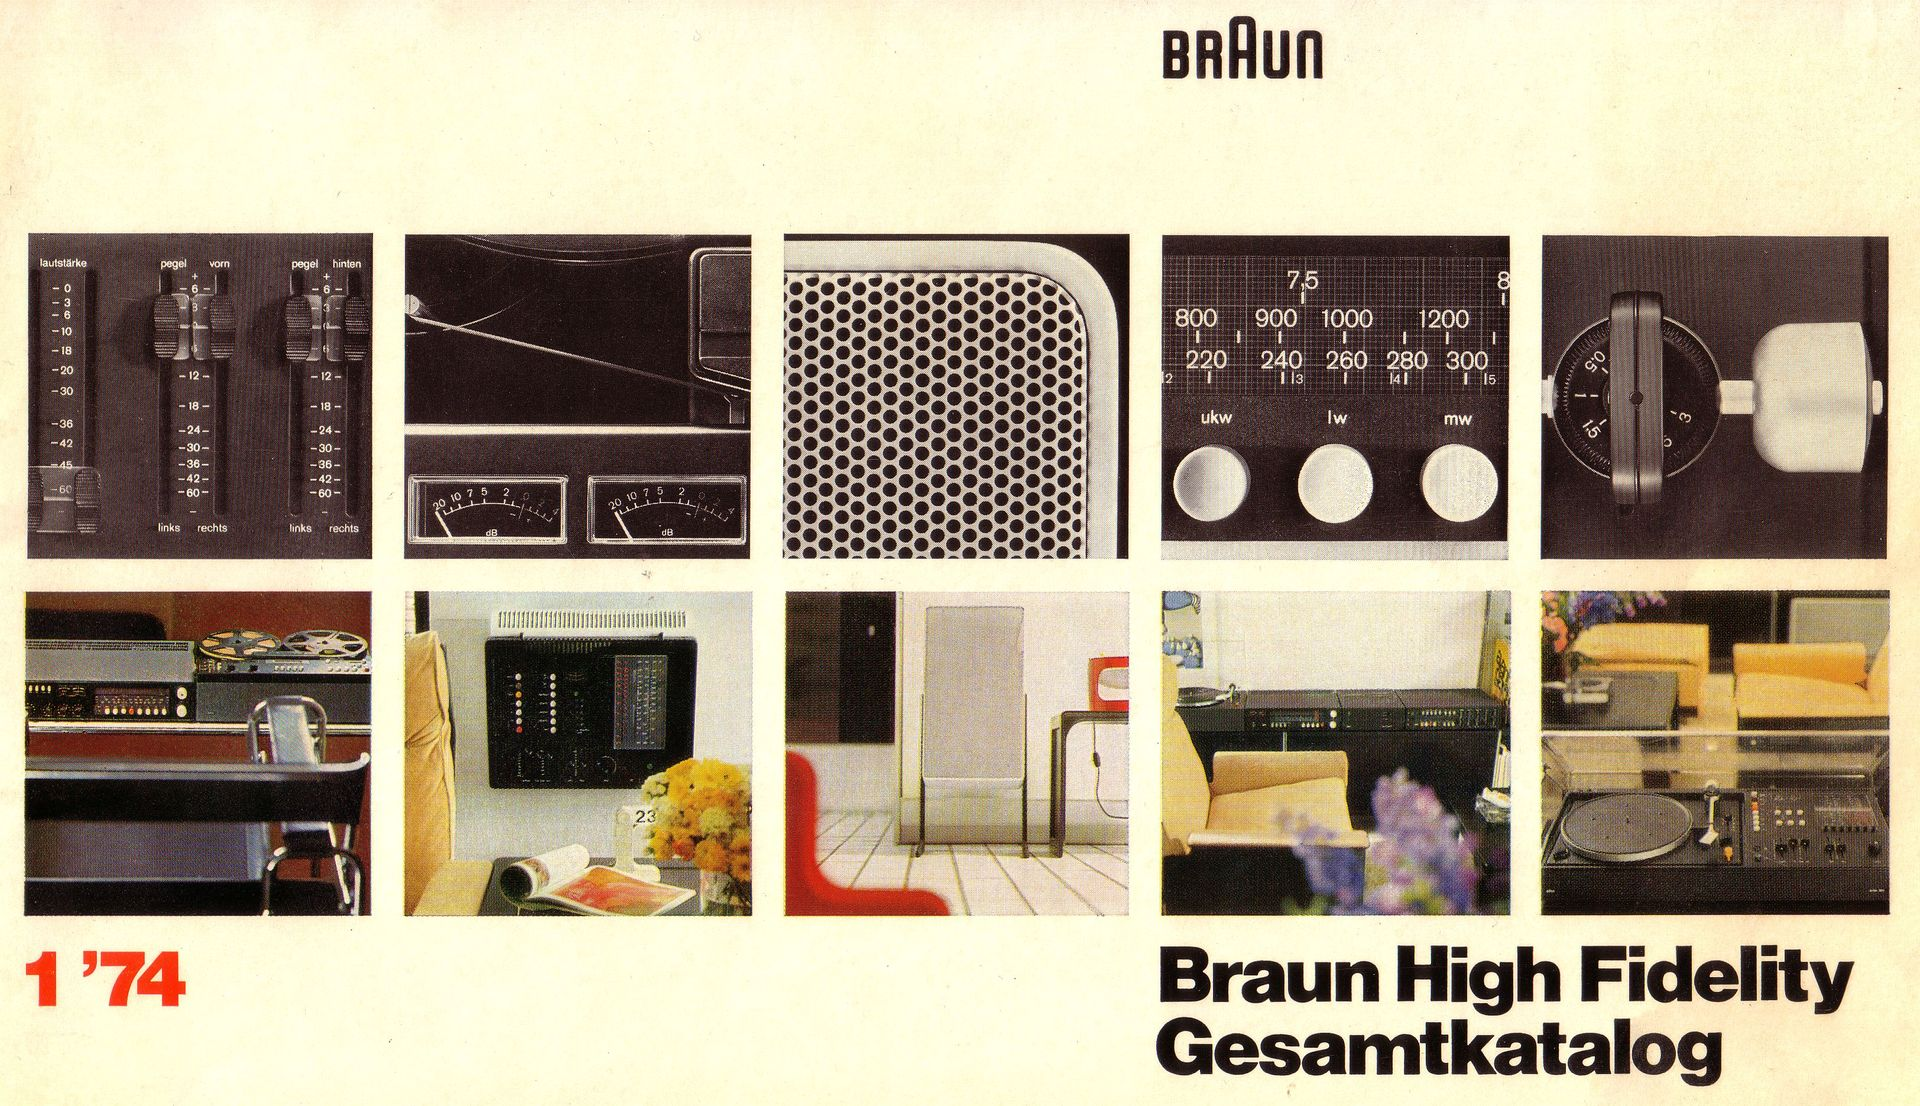 braun prospekt braun prospekt hifi bildergalerie. Black Bedroom Furniture Sets. Home Design Ideas